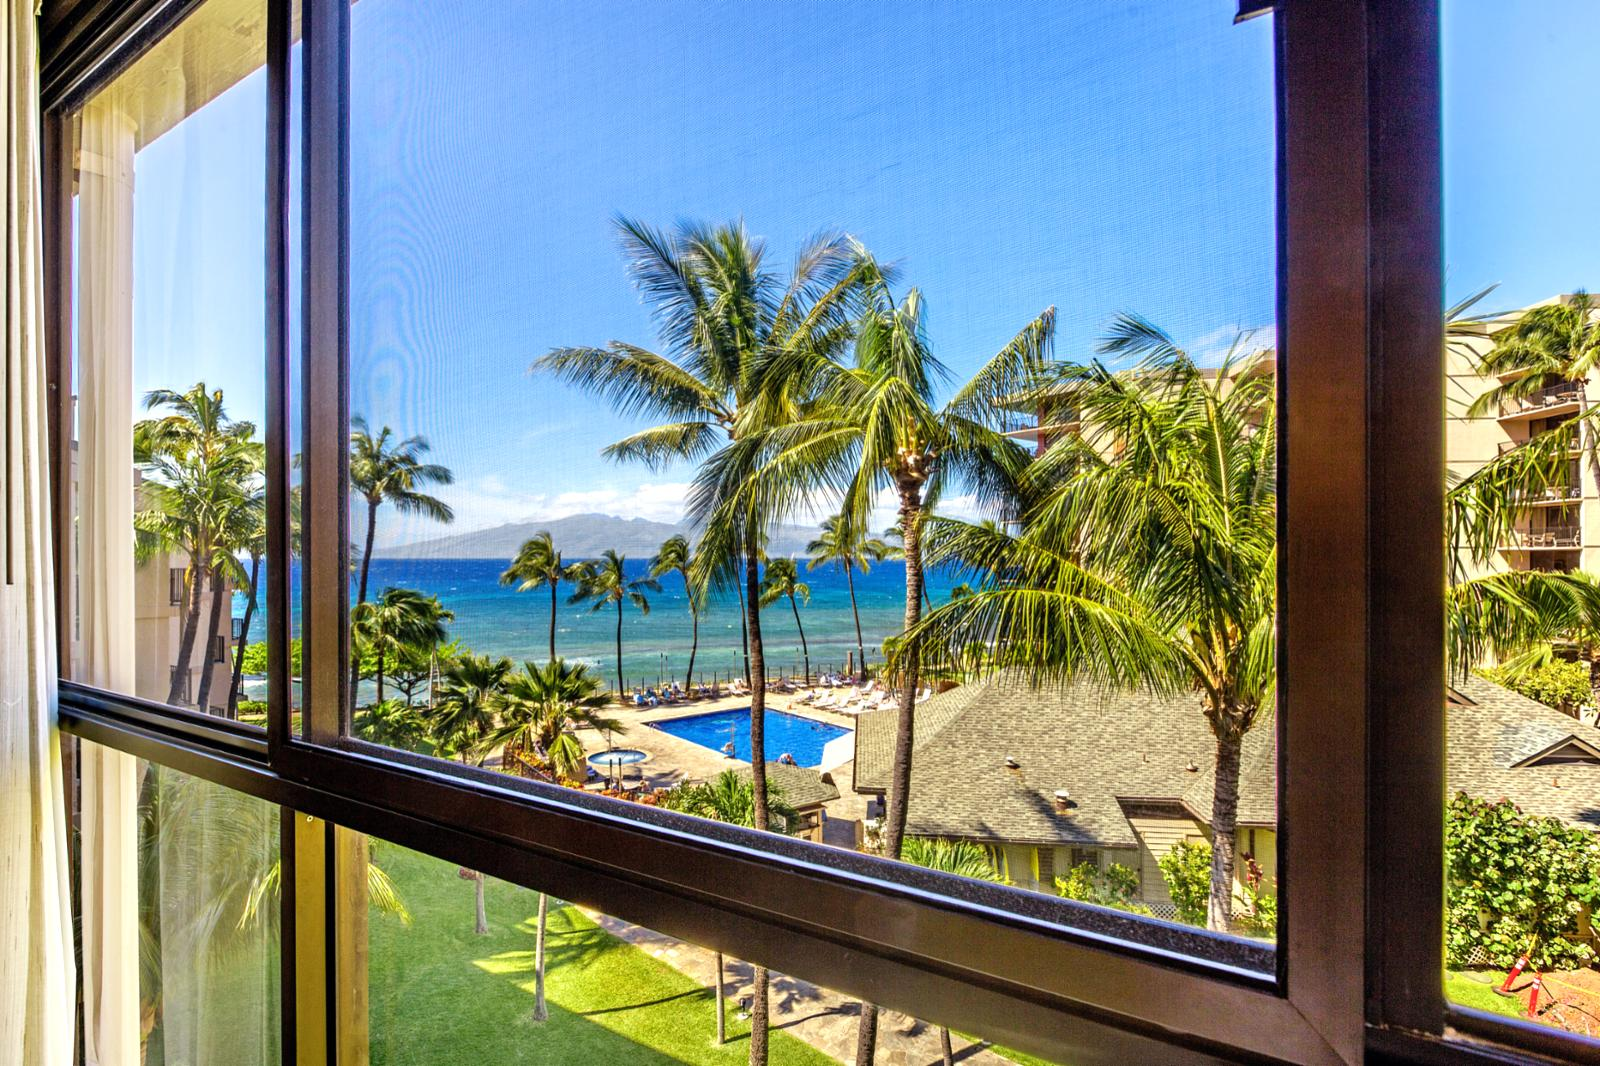 Ocean views from your bedroom or perfect nightly sunsets, you choose